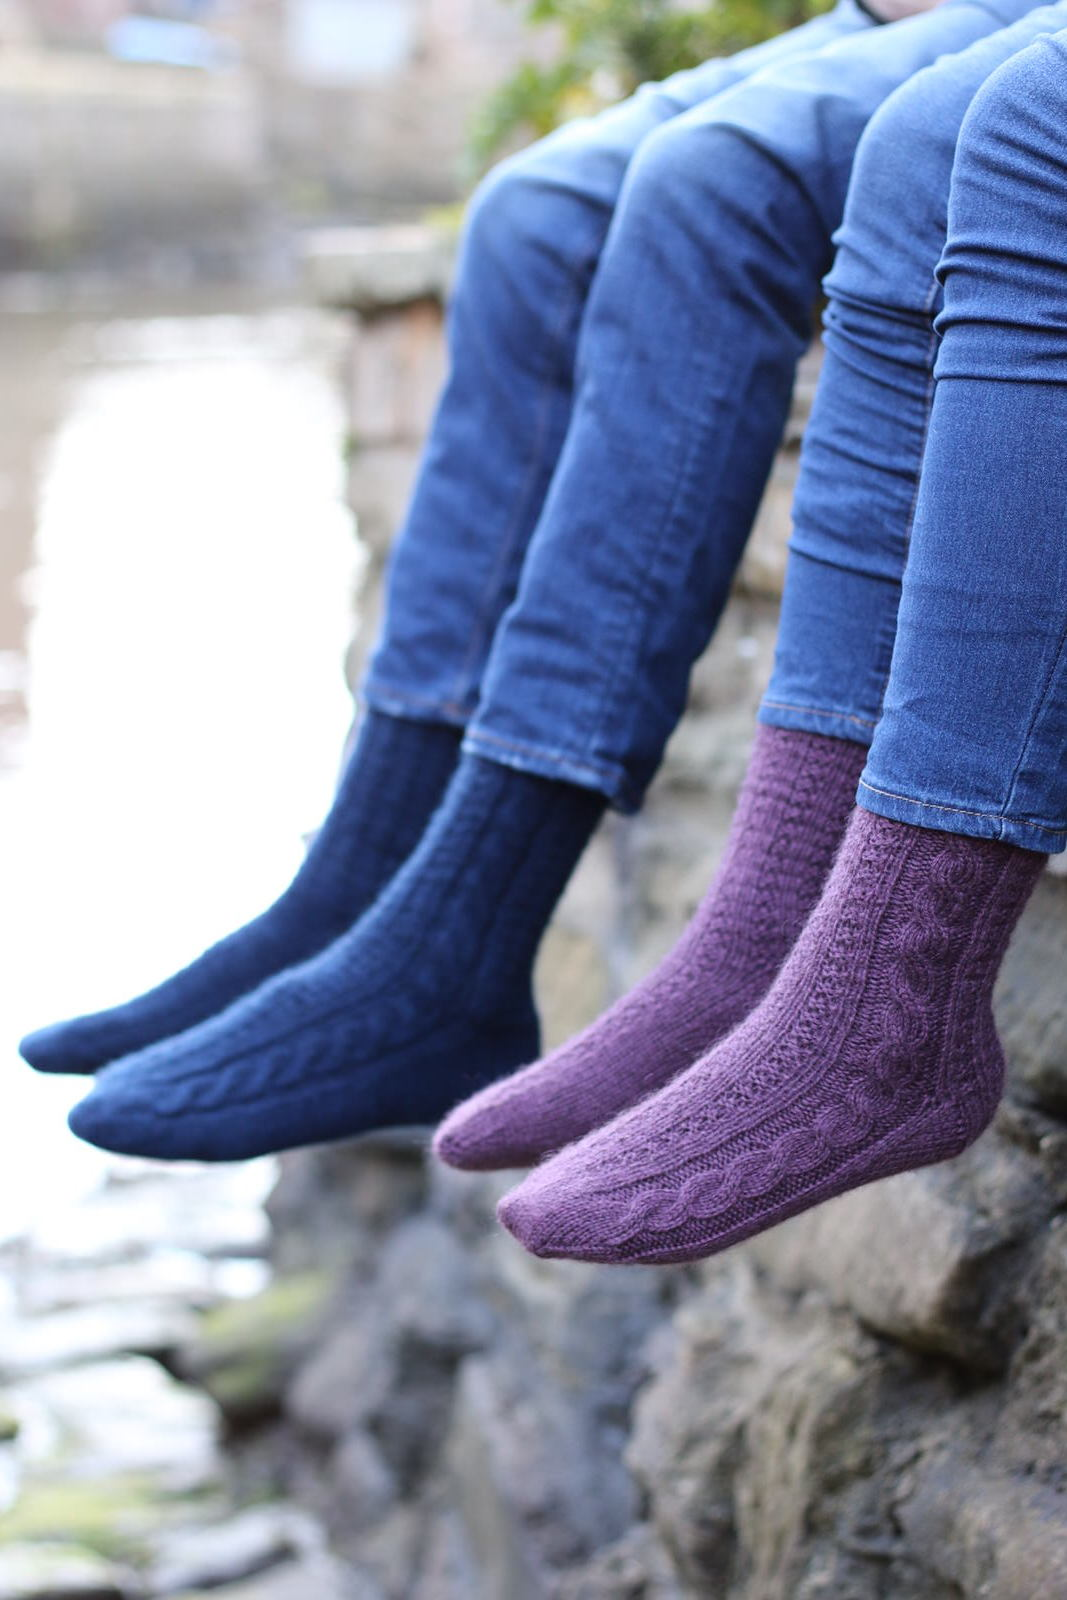 Whitby Socks  The traditional Betty Martin stitch pattern becomes a stretchy fabric, that when worked on small needles is perfect for socks.  Yarn: Dovestone DK (252 yds / 230m in 100g)  Yarn Quantities: 252 - 328 yards (230 - 300 m)  Needles:  3.0mm DPNs  Notions: cable needle, stitch markers  Sizes: S/M (M/L) to fit foot circumference up to 21.5 (25.5) cm/81⁄2 (10)